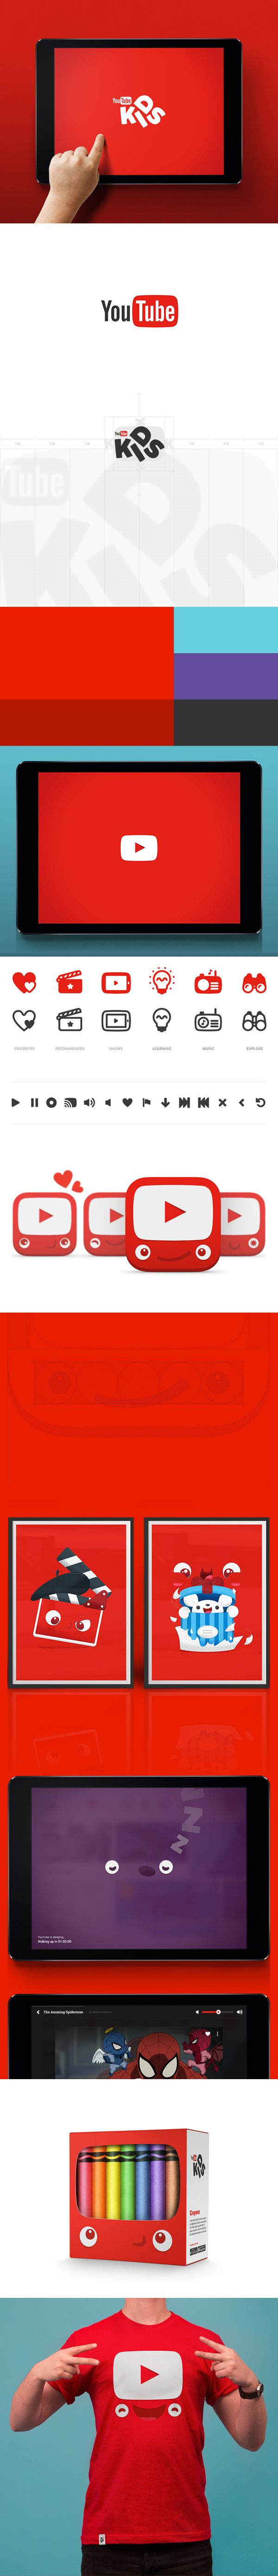 YouTube Kids brand by Hello Monday